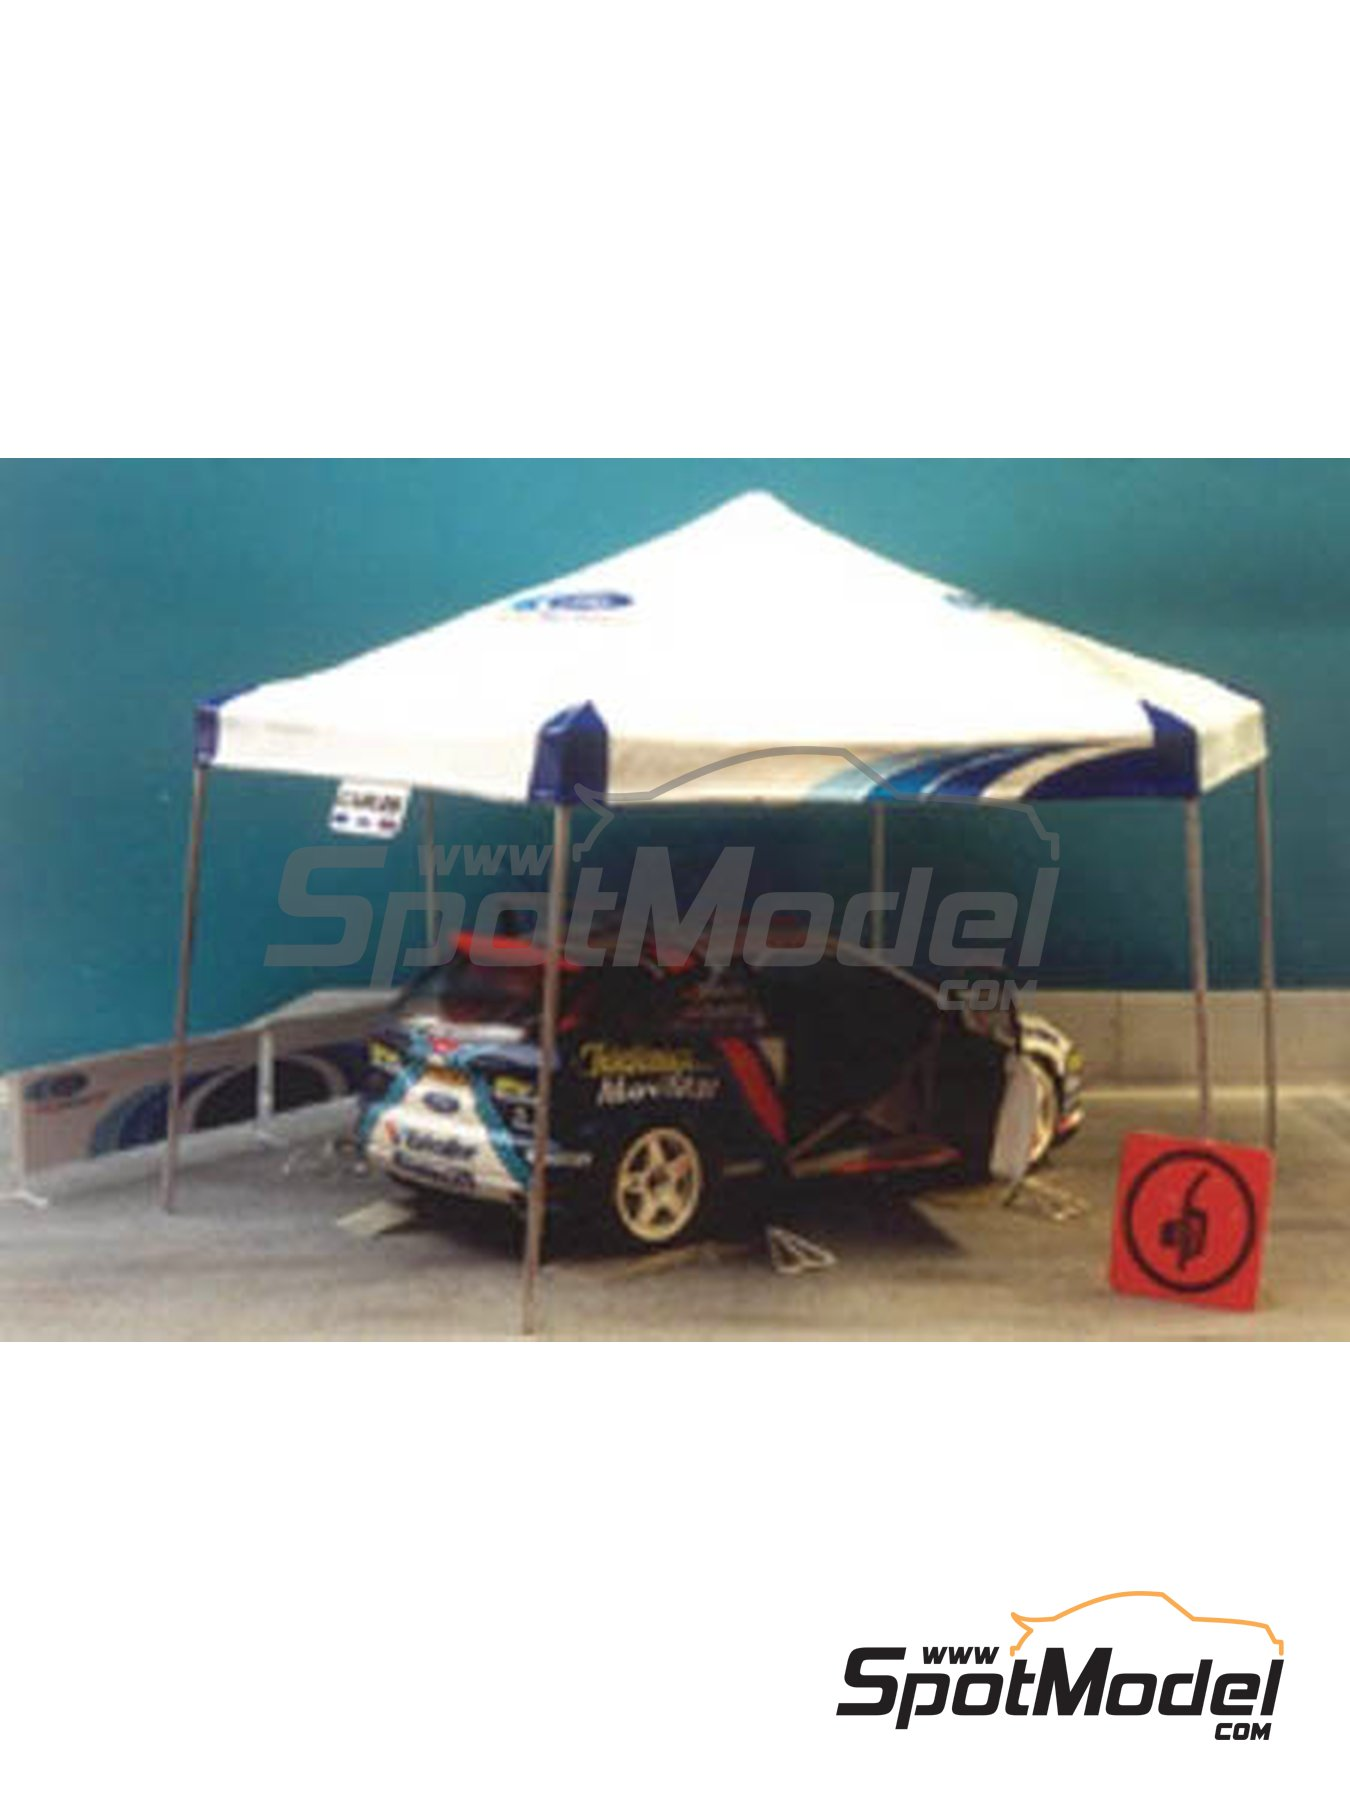 Mitsubishi assistance tent | Set in 1/24 scale manufactured by Renaissance Models (ref. 24TA01) image